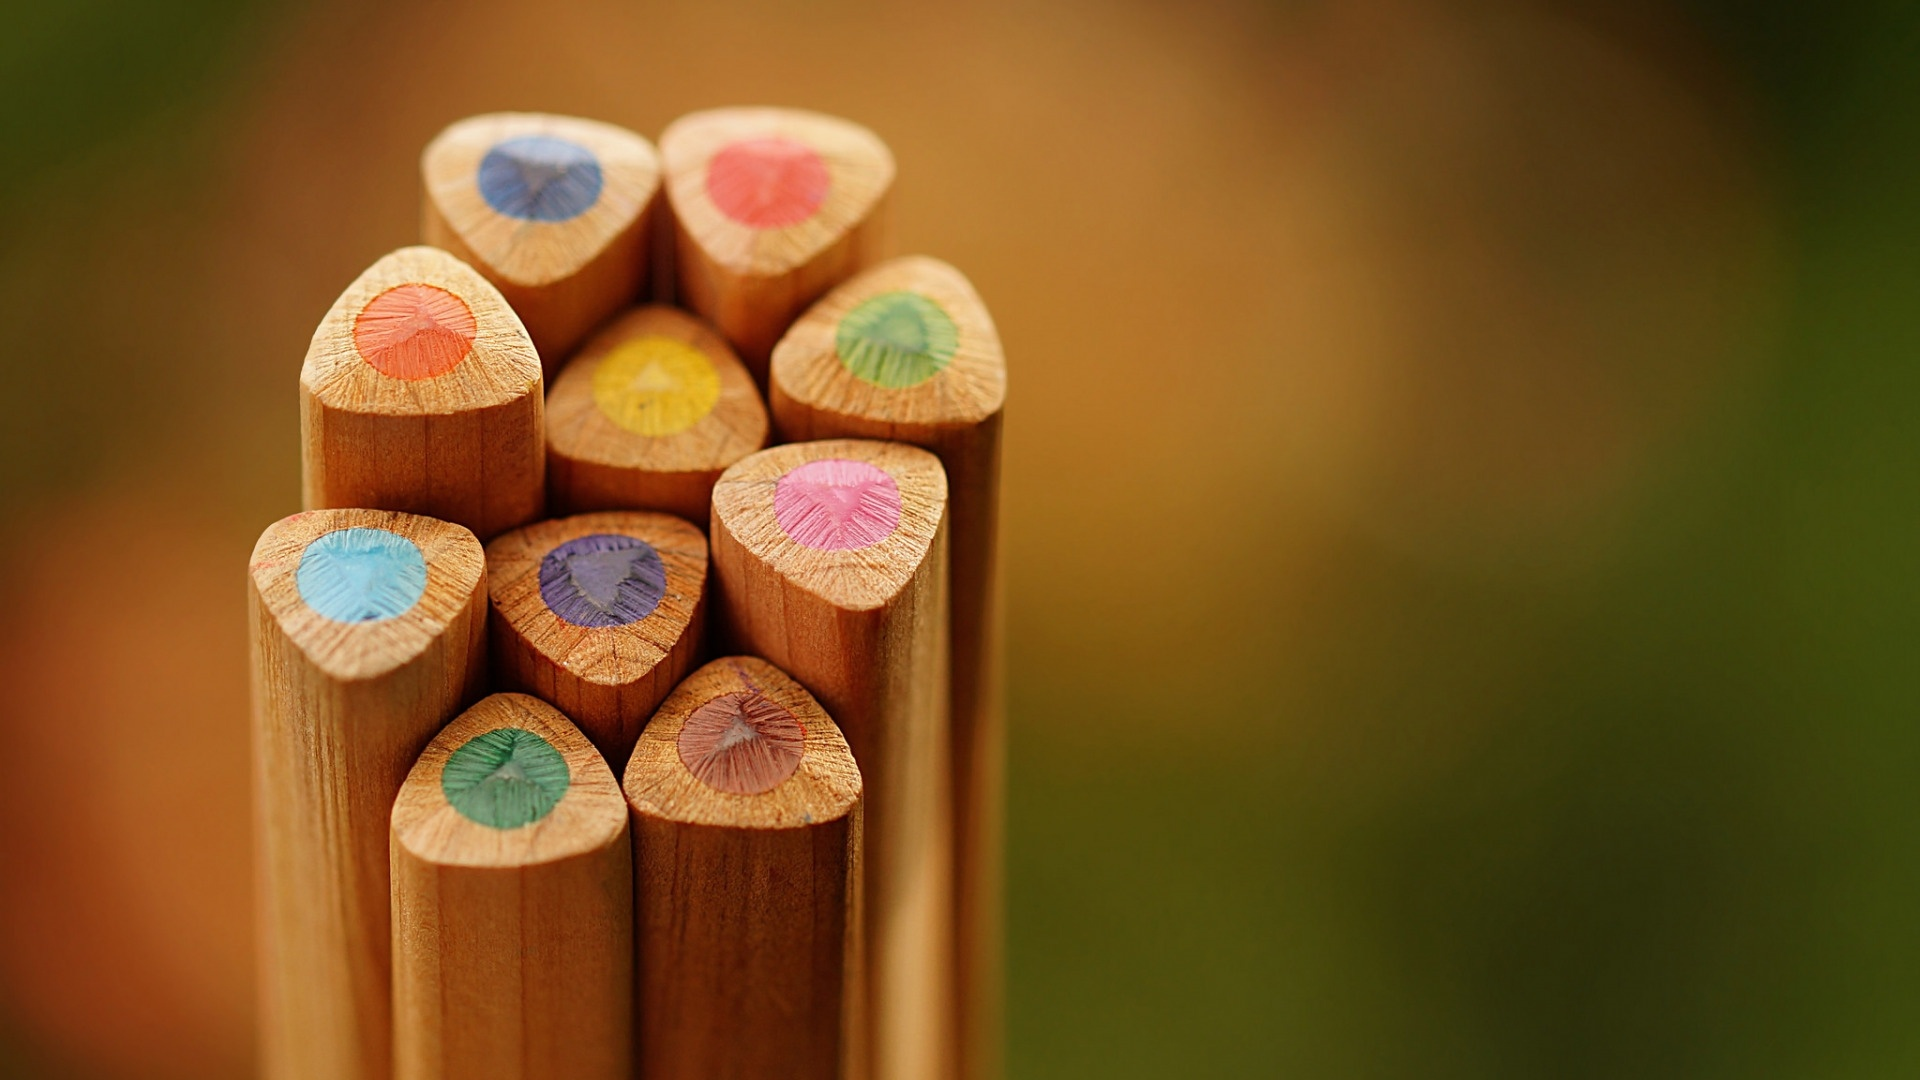 Pencil HD Wallpaper